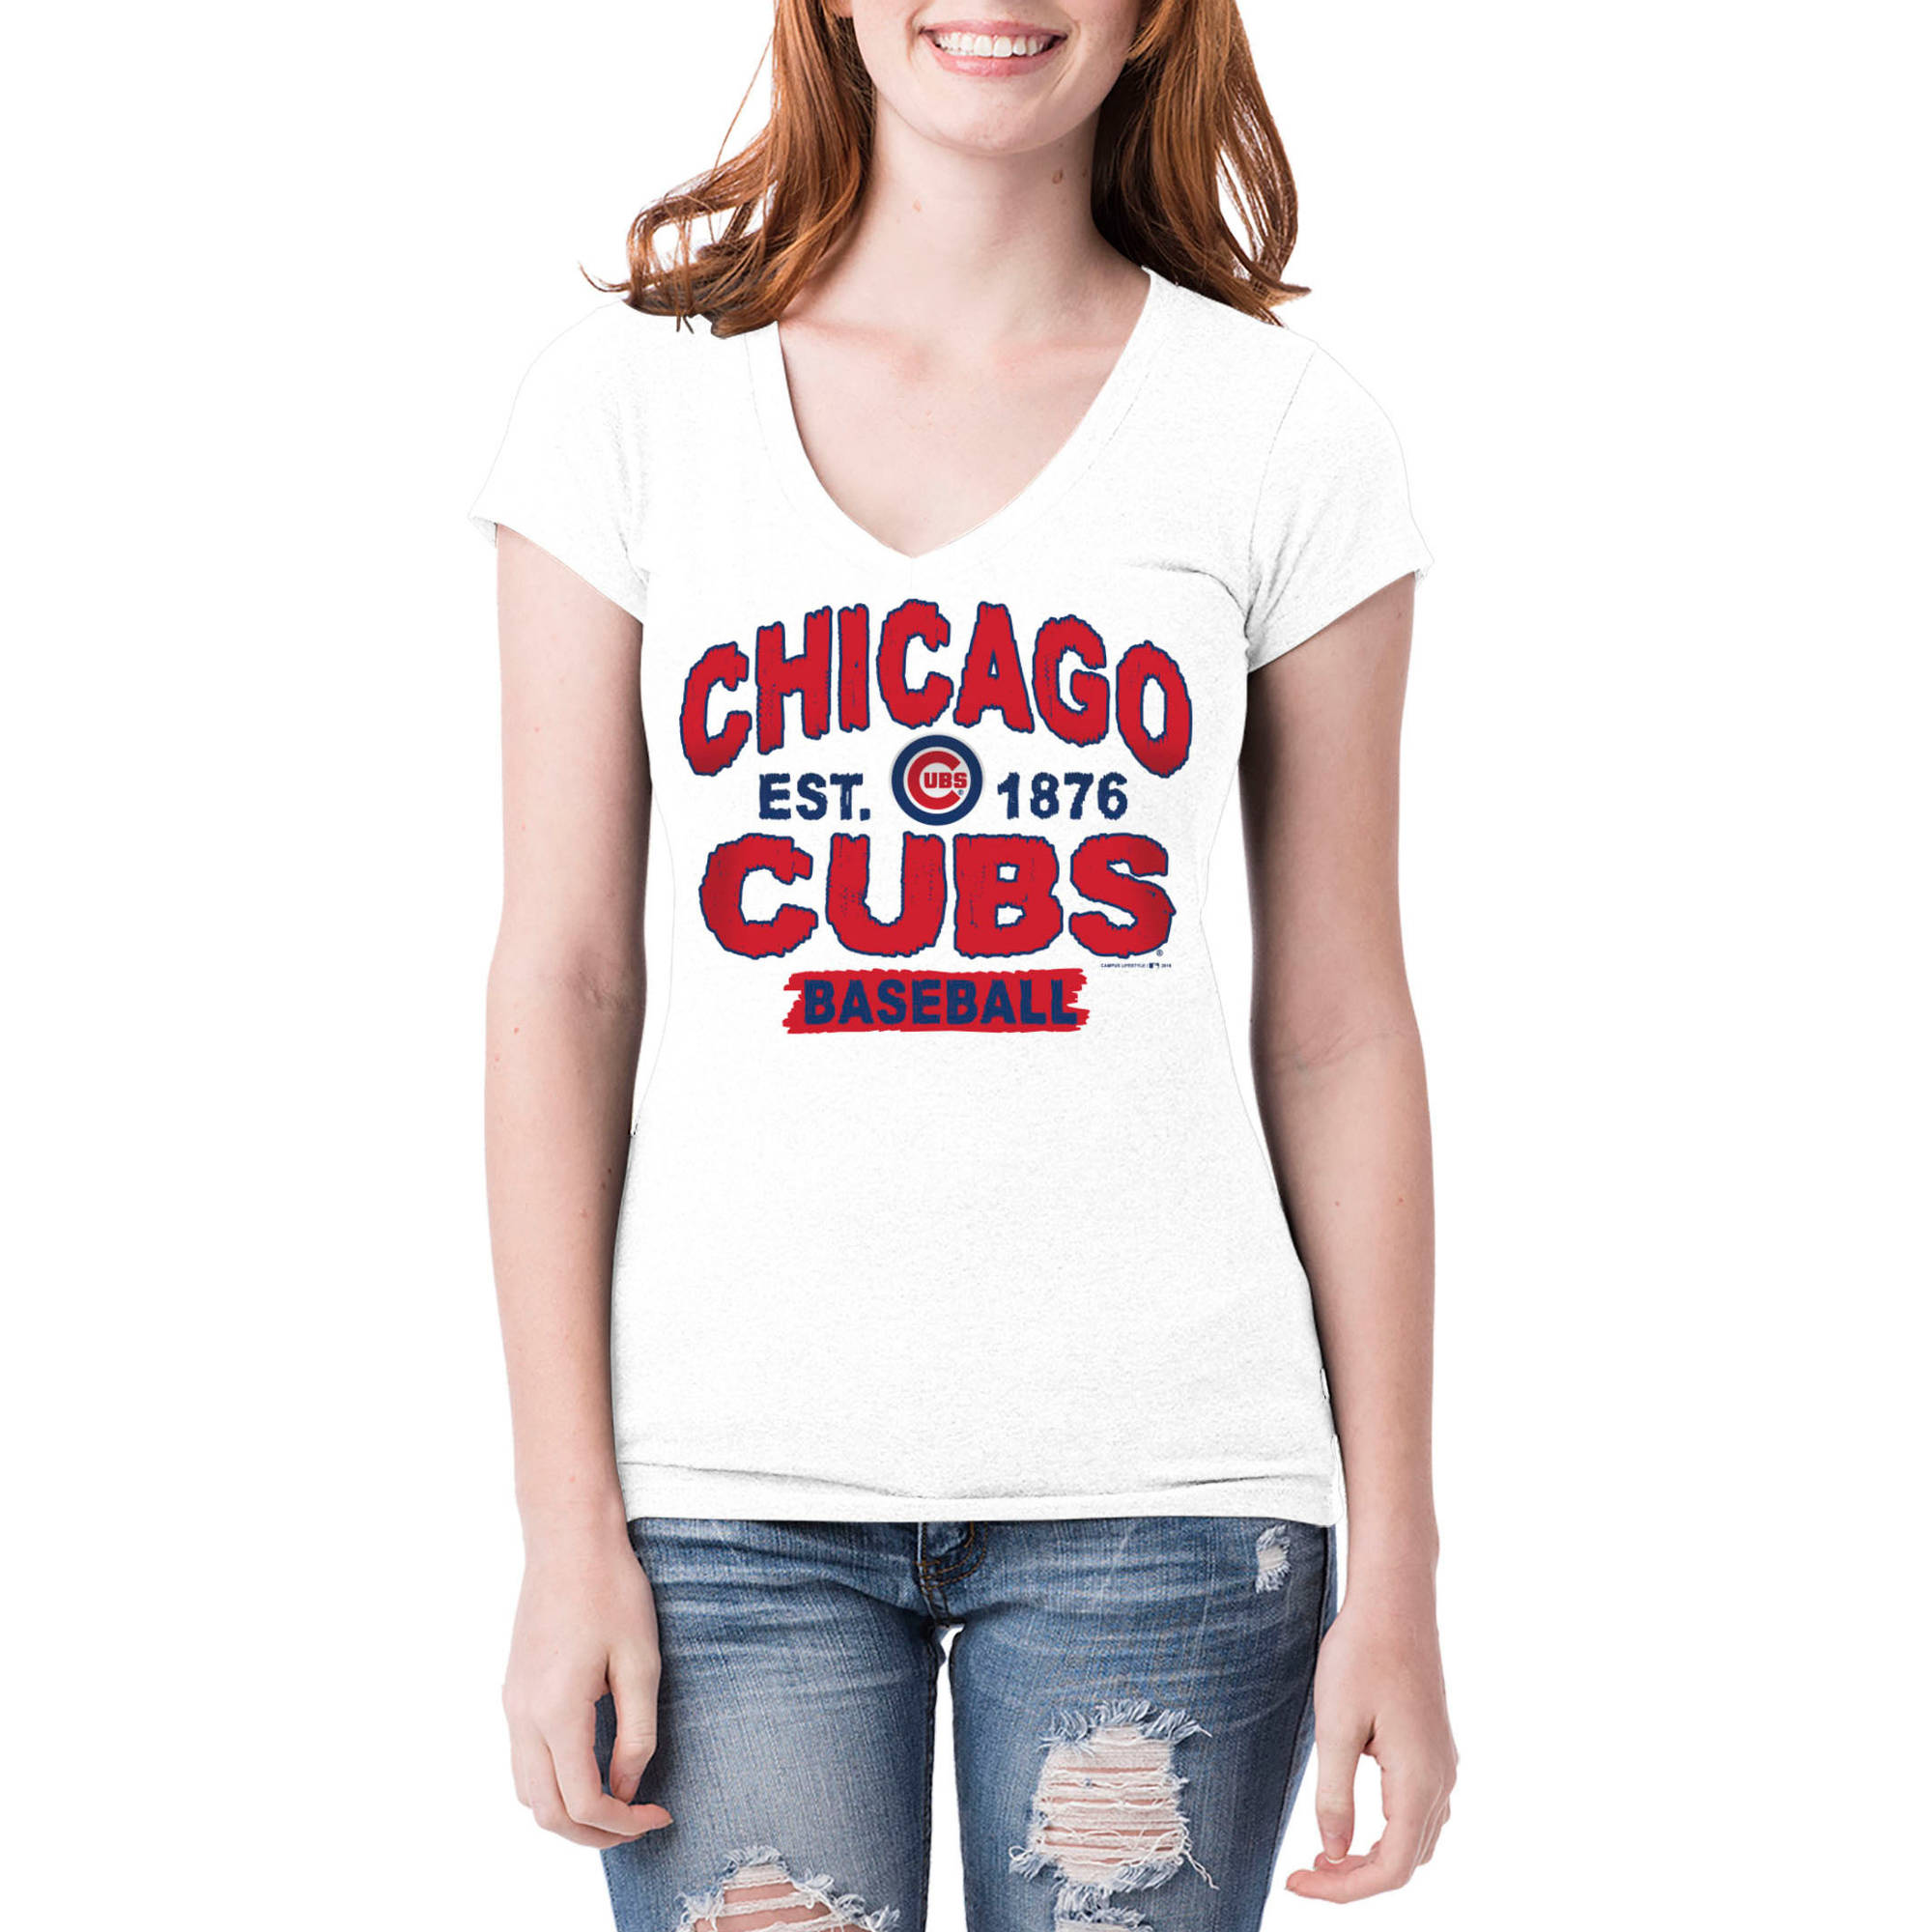 Chicago Cubs Womens Short Sleeve White Graphic Tee